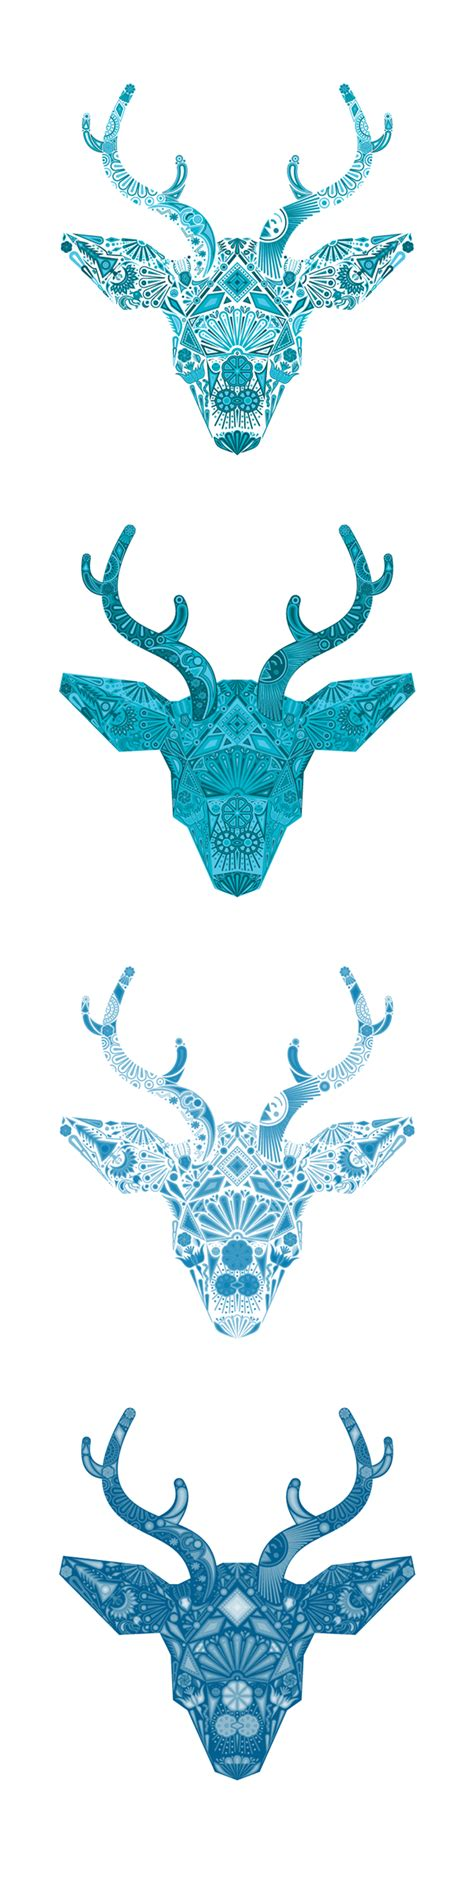 huichol deer on behance